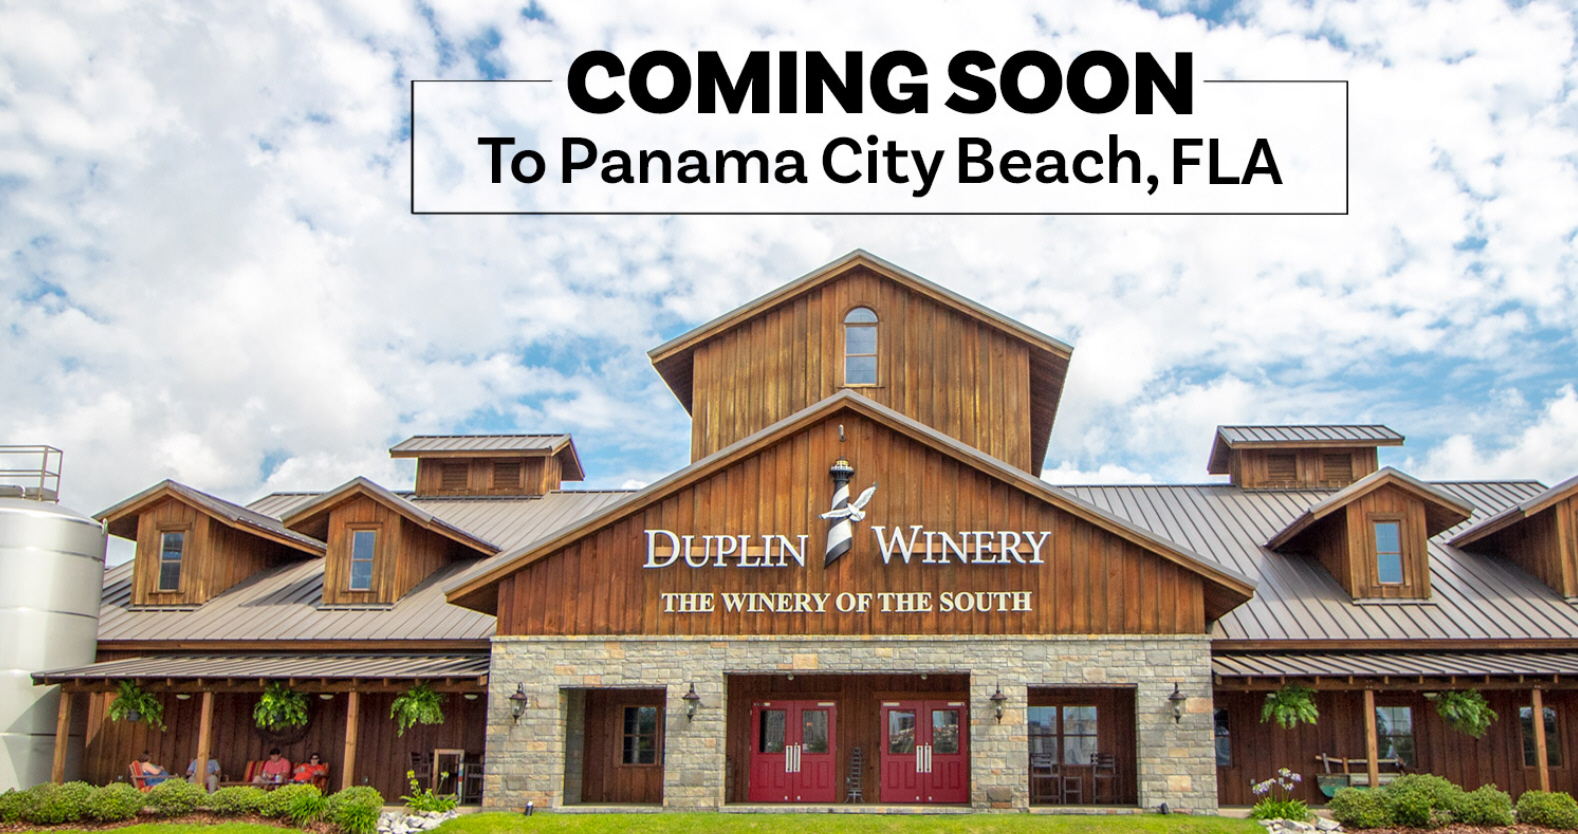 Duplin Winery Announces Major New Attraction Coming To Panama City Beach